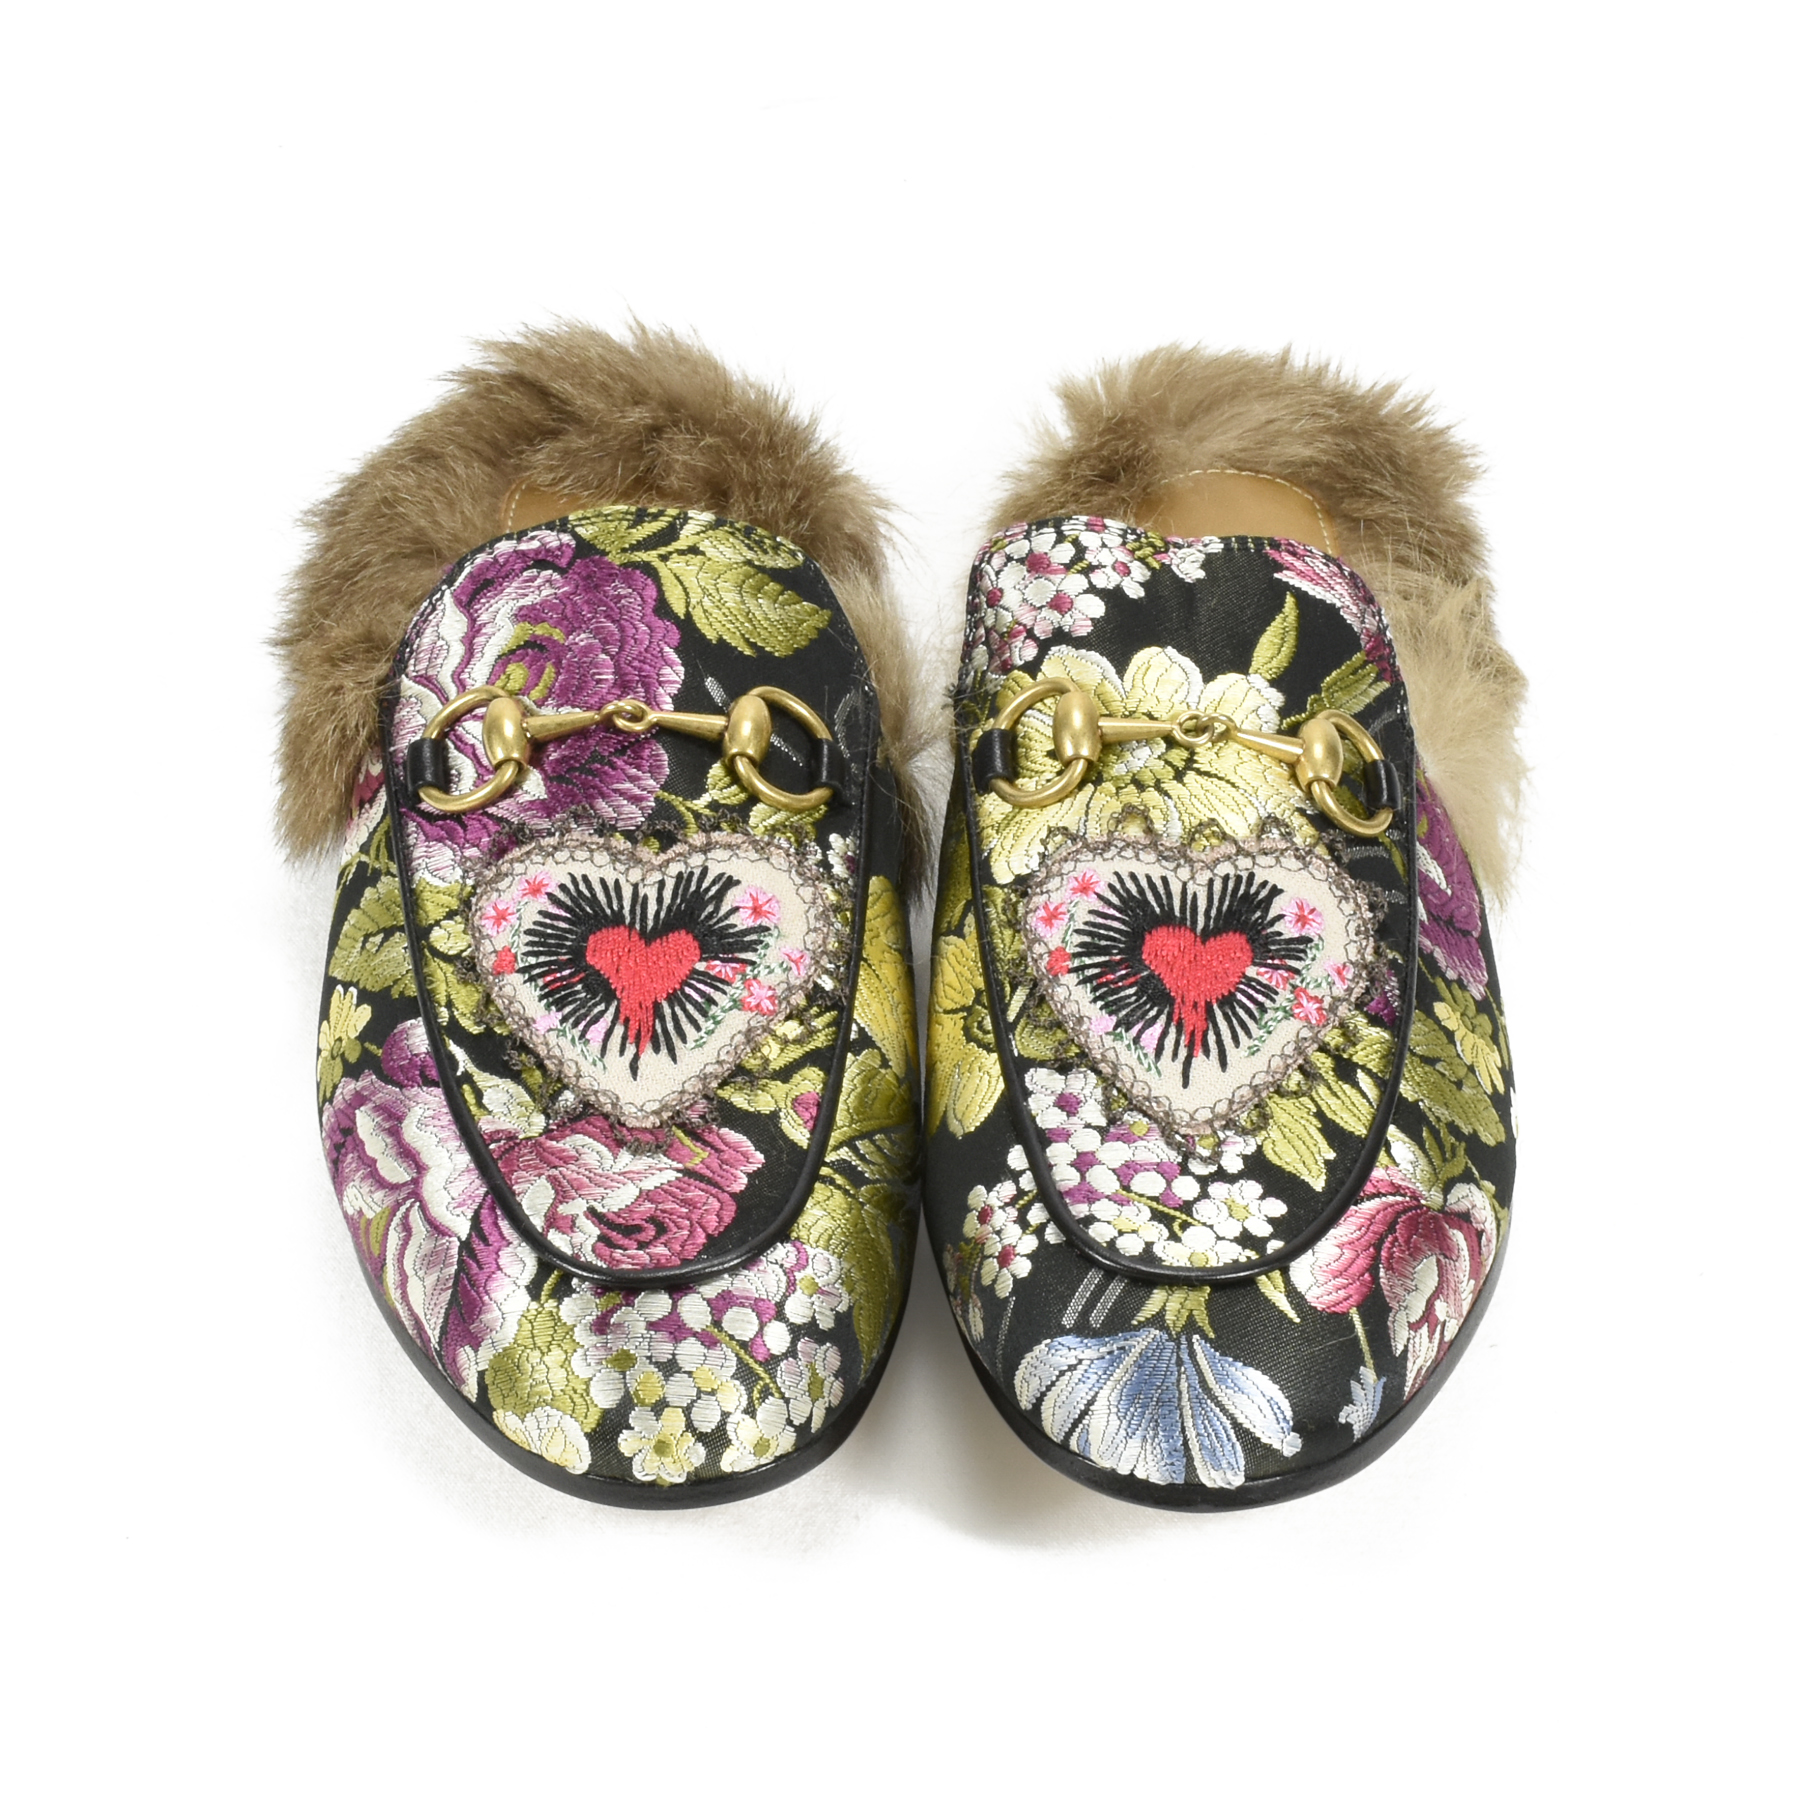 7e69adcfcc8 Authentic Second Hand Gucci Princetown Floral Brocade Slipper  (PSS-200-00981)